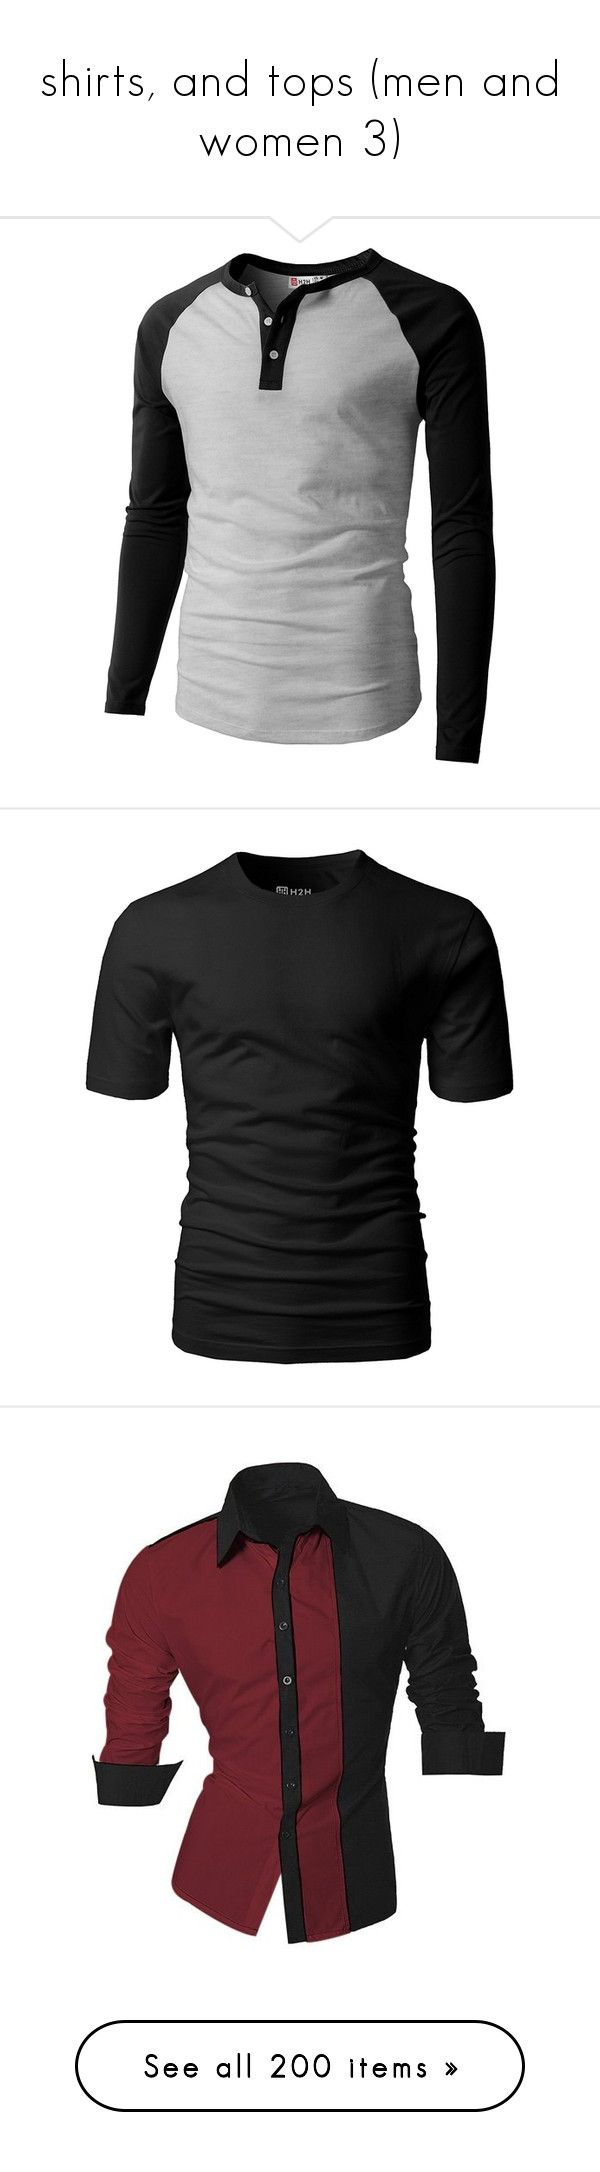 """""""shirts, and tops (men and women 3)"""" by lulu-dusk on Polyvore featuring men's fashion, men's clothing, men's shirts, men's t-shirts, mens wide striped shirts, mens slim t shirts, mens slim fit t shirts, mens three quarter sleeve shirts, mens raglan short sleeve t shirts and mens t shirts"""